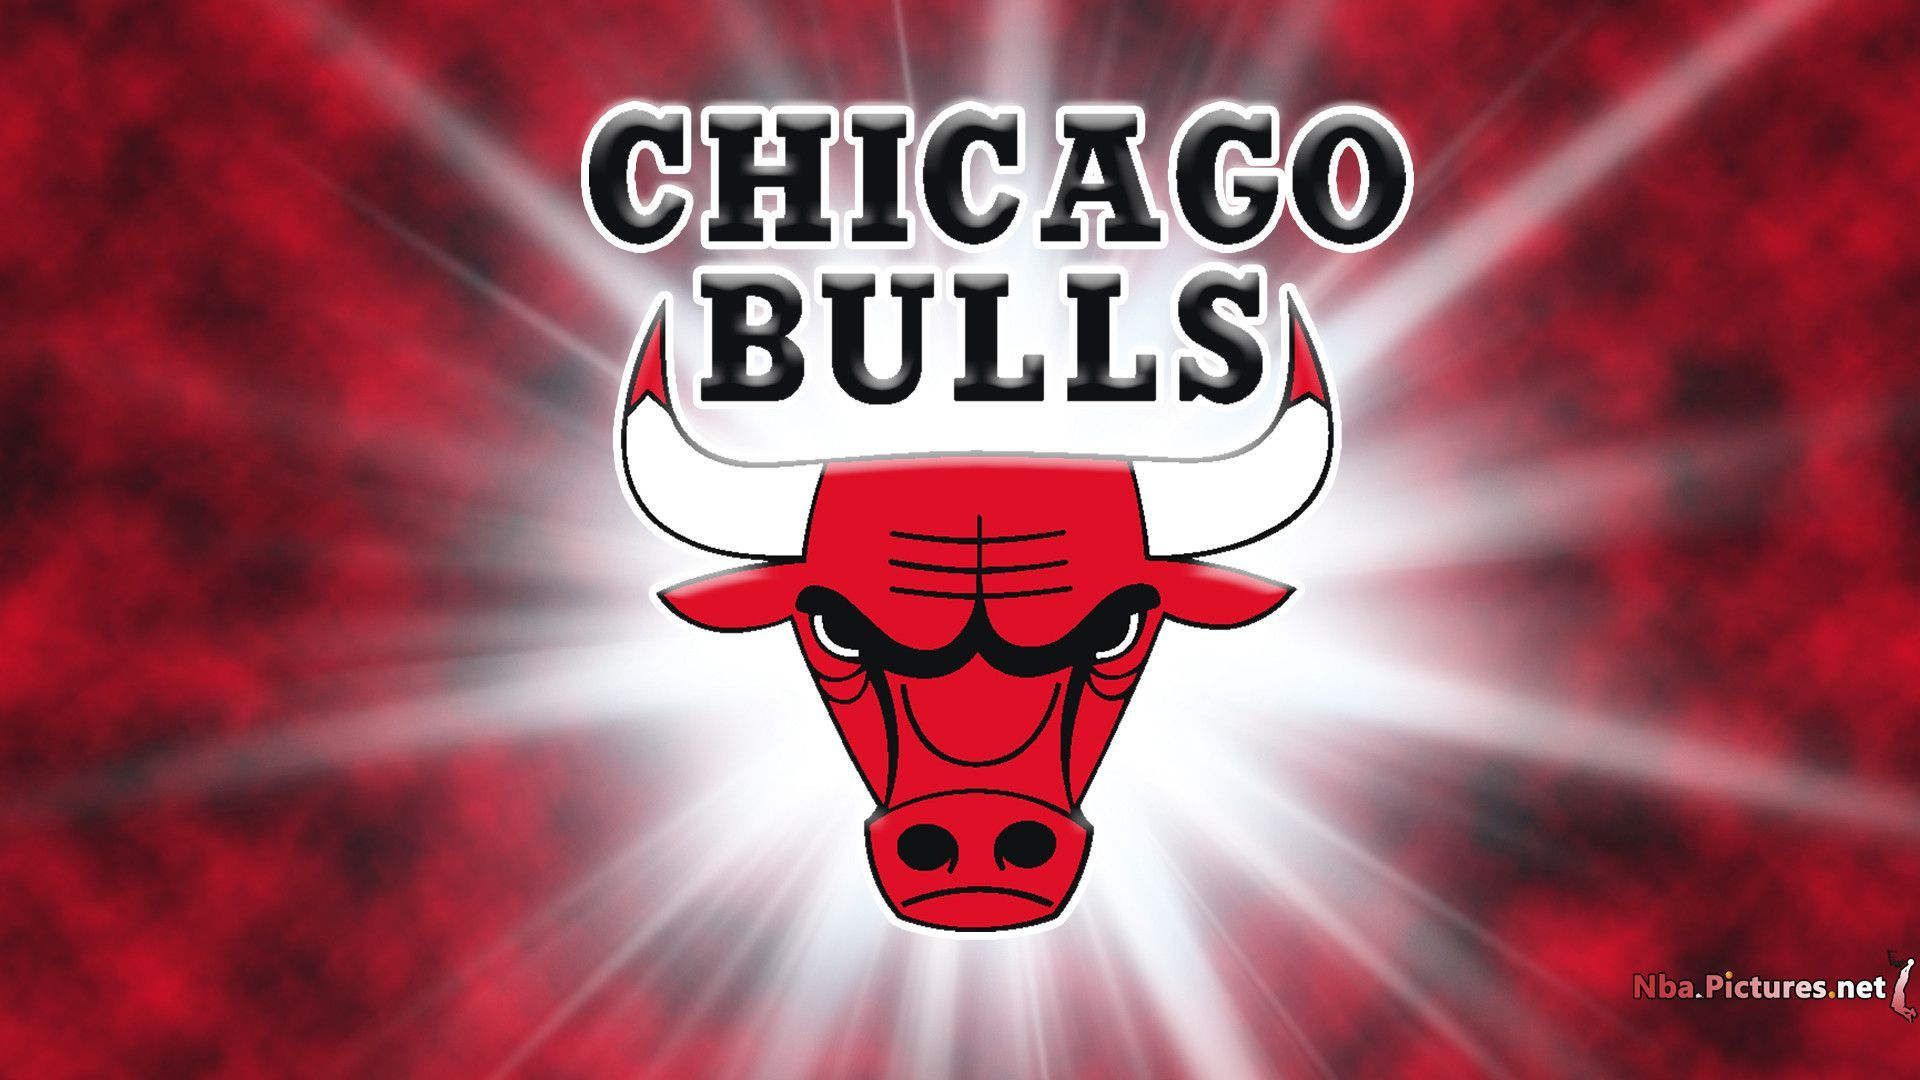 Best images about da bulls on pinterest logos bulls hd the chicago bulls wallpapers wallpapers wallpapers voltagebd Images